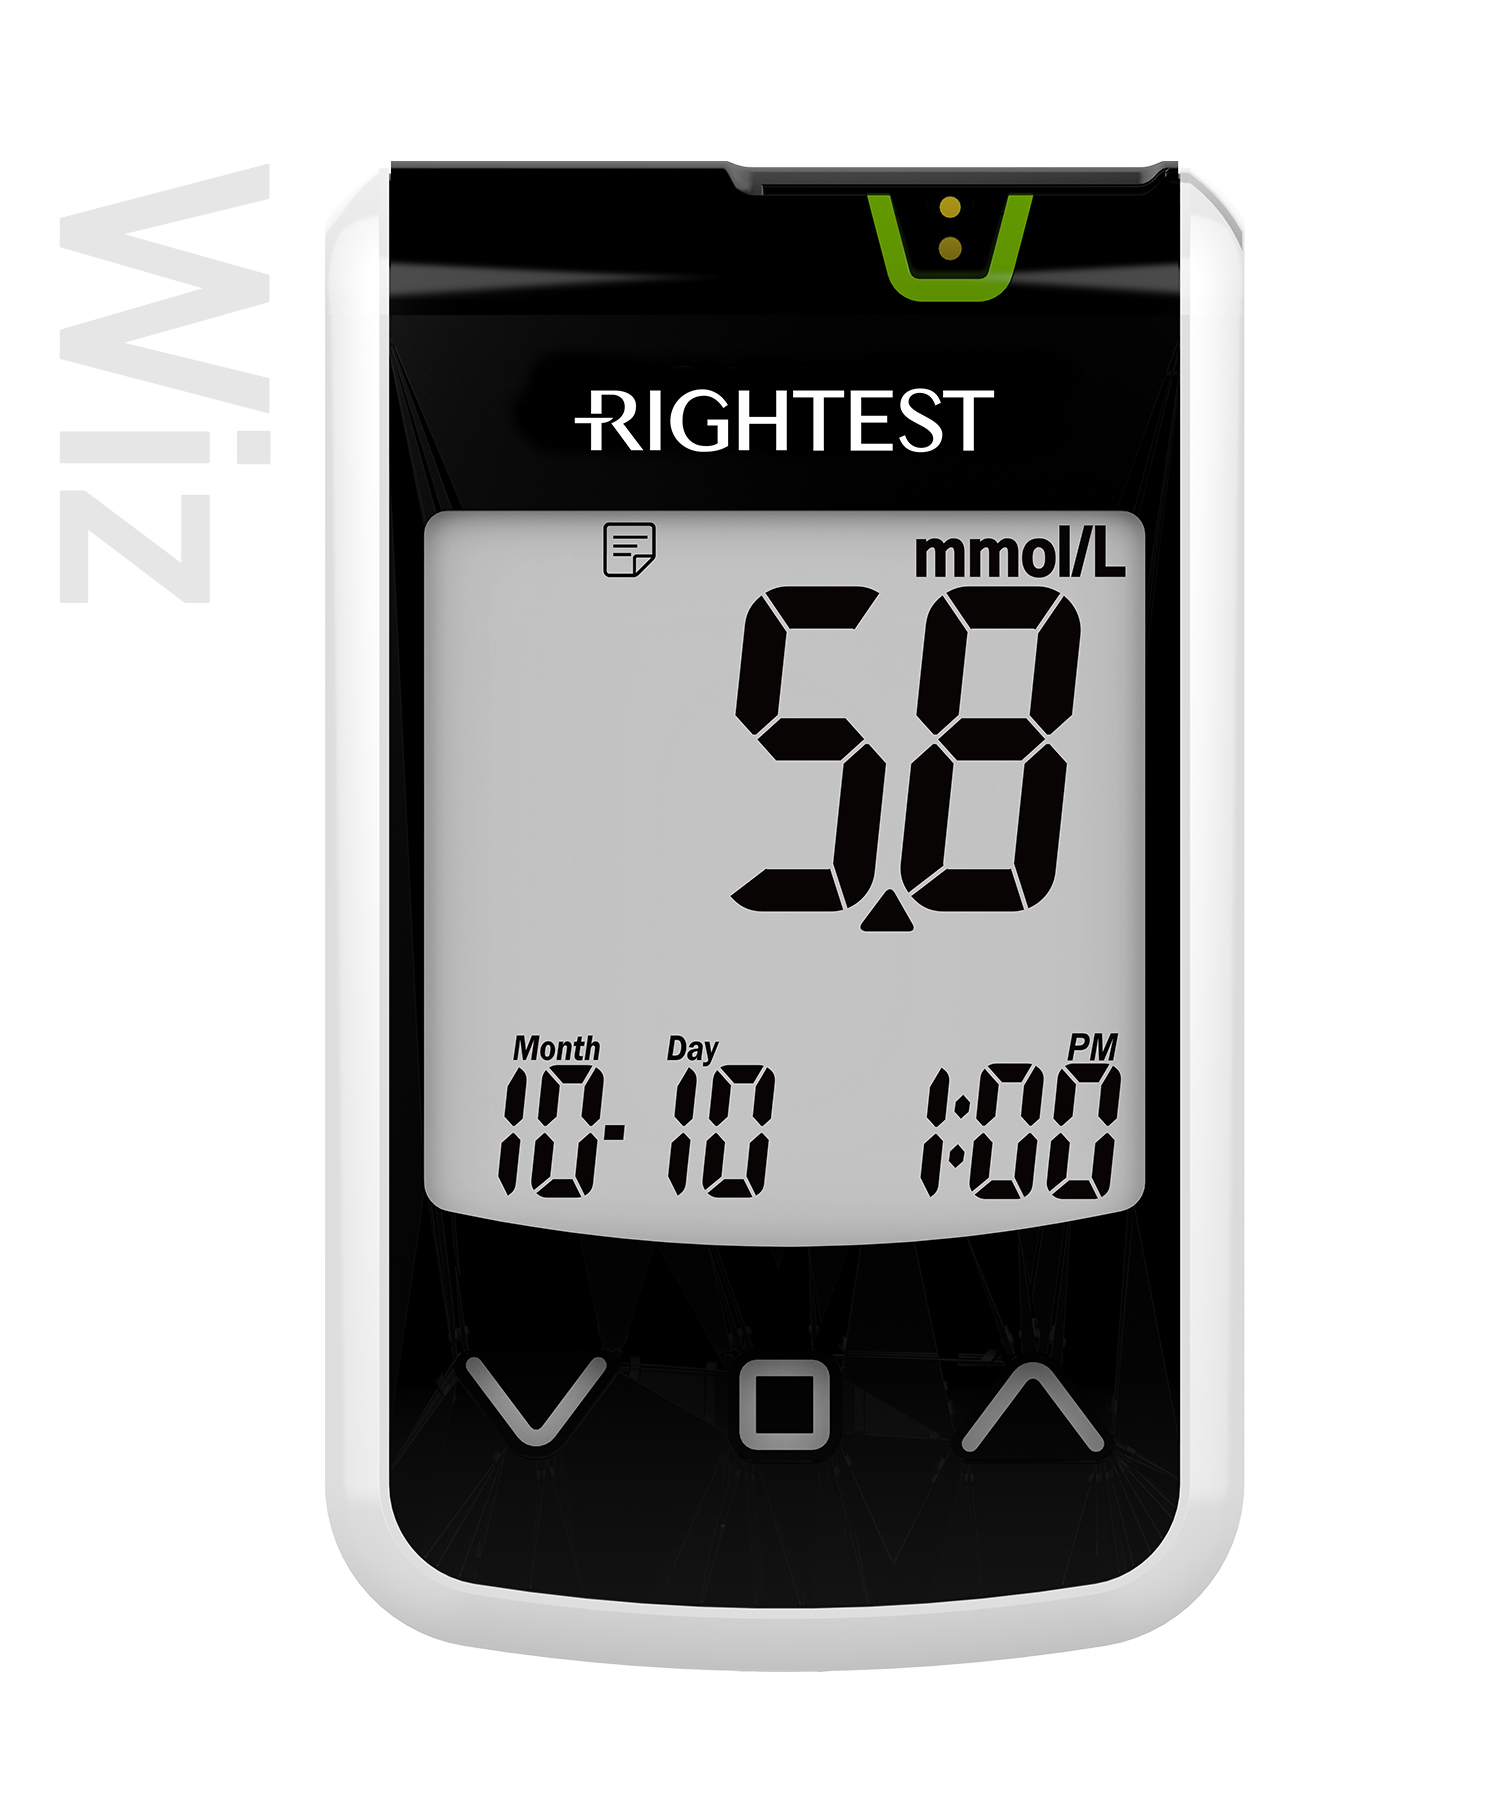 pro-img/05_Wiz/en/Wiz(mmol)-Rightest-glucose-meter.jpg